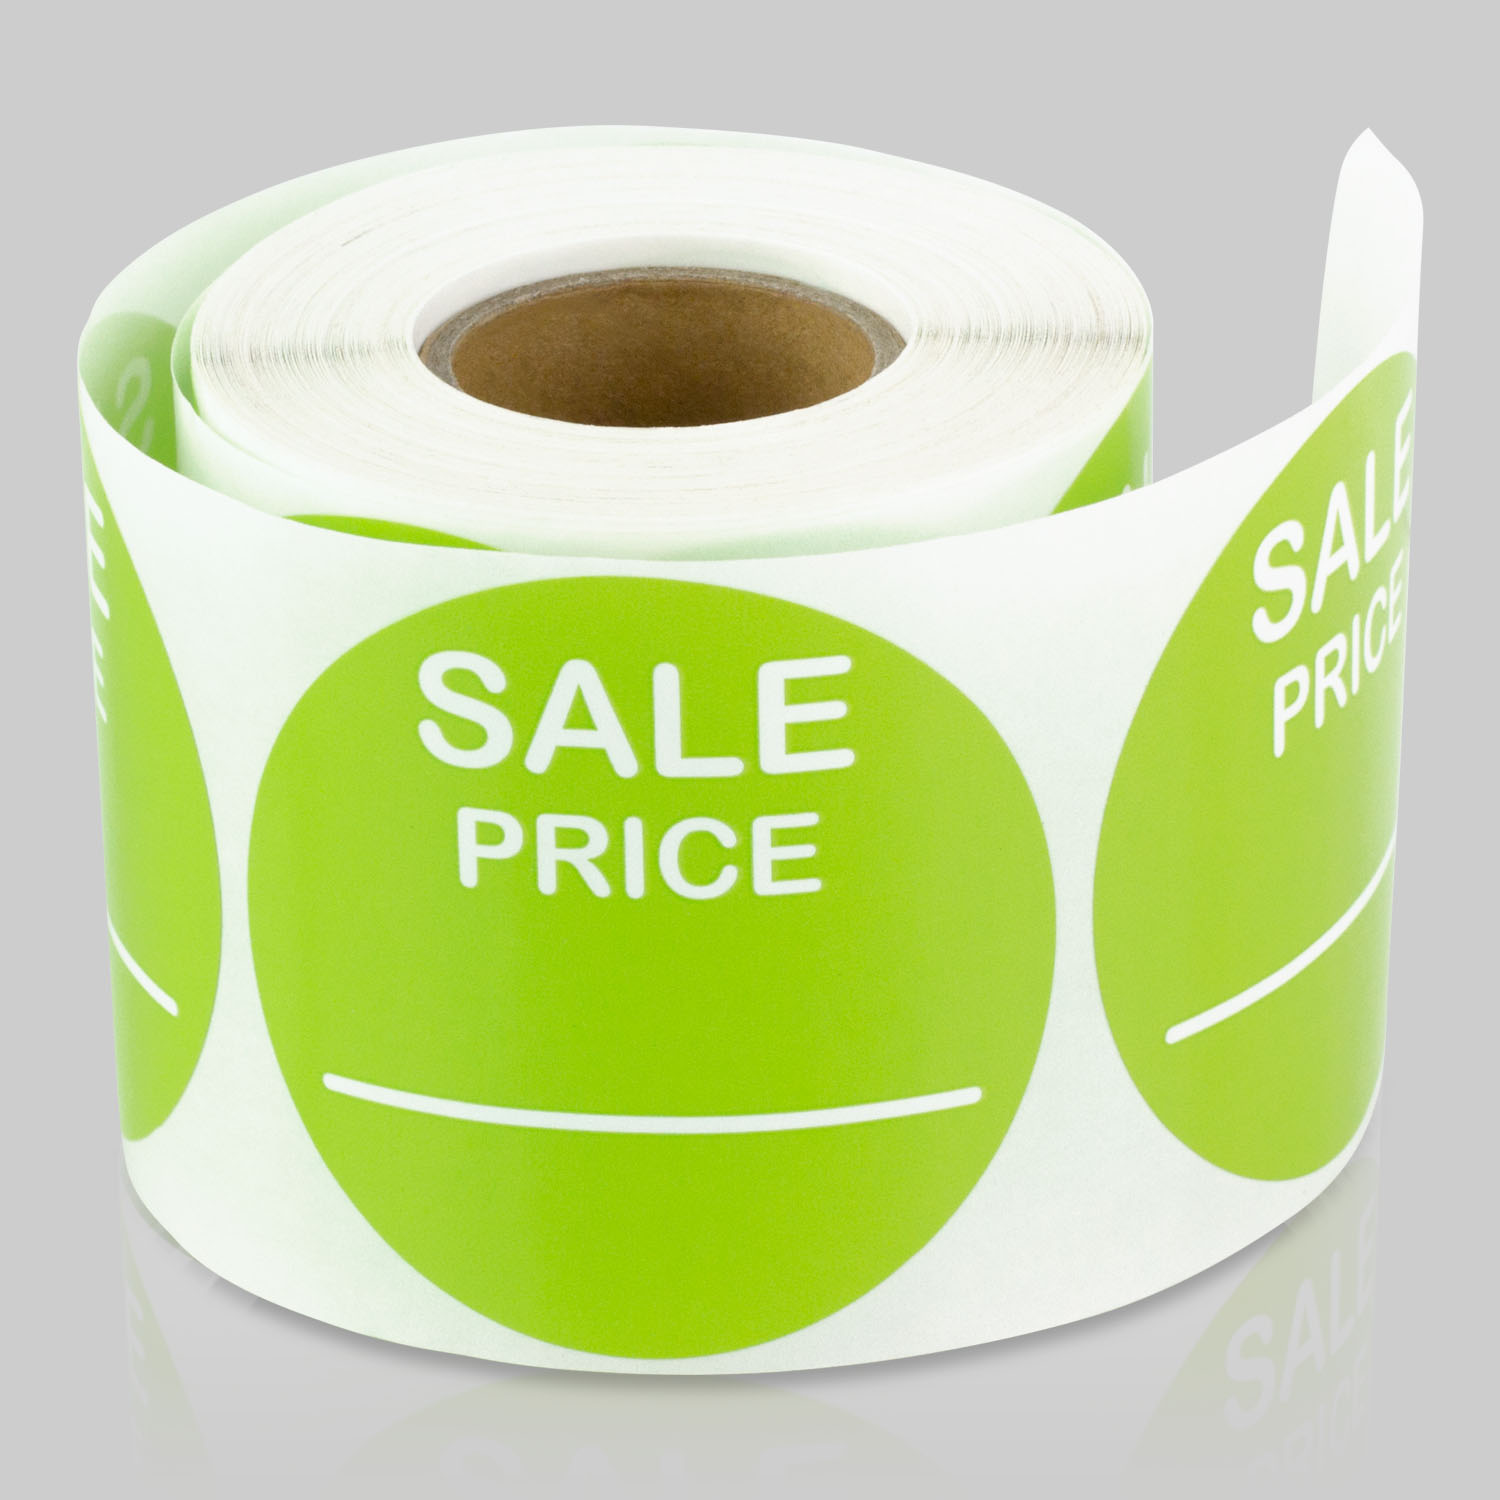 Garage Sale Price Stickers Round Sale Price Stickers 2 Inch 300 Labels Per Roll 5 Rolls Lime For Use Retail Yard Sales Or Garage Sale